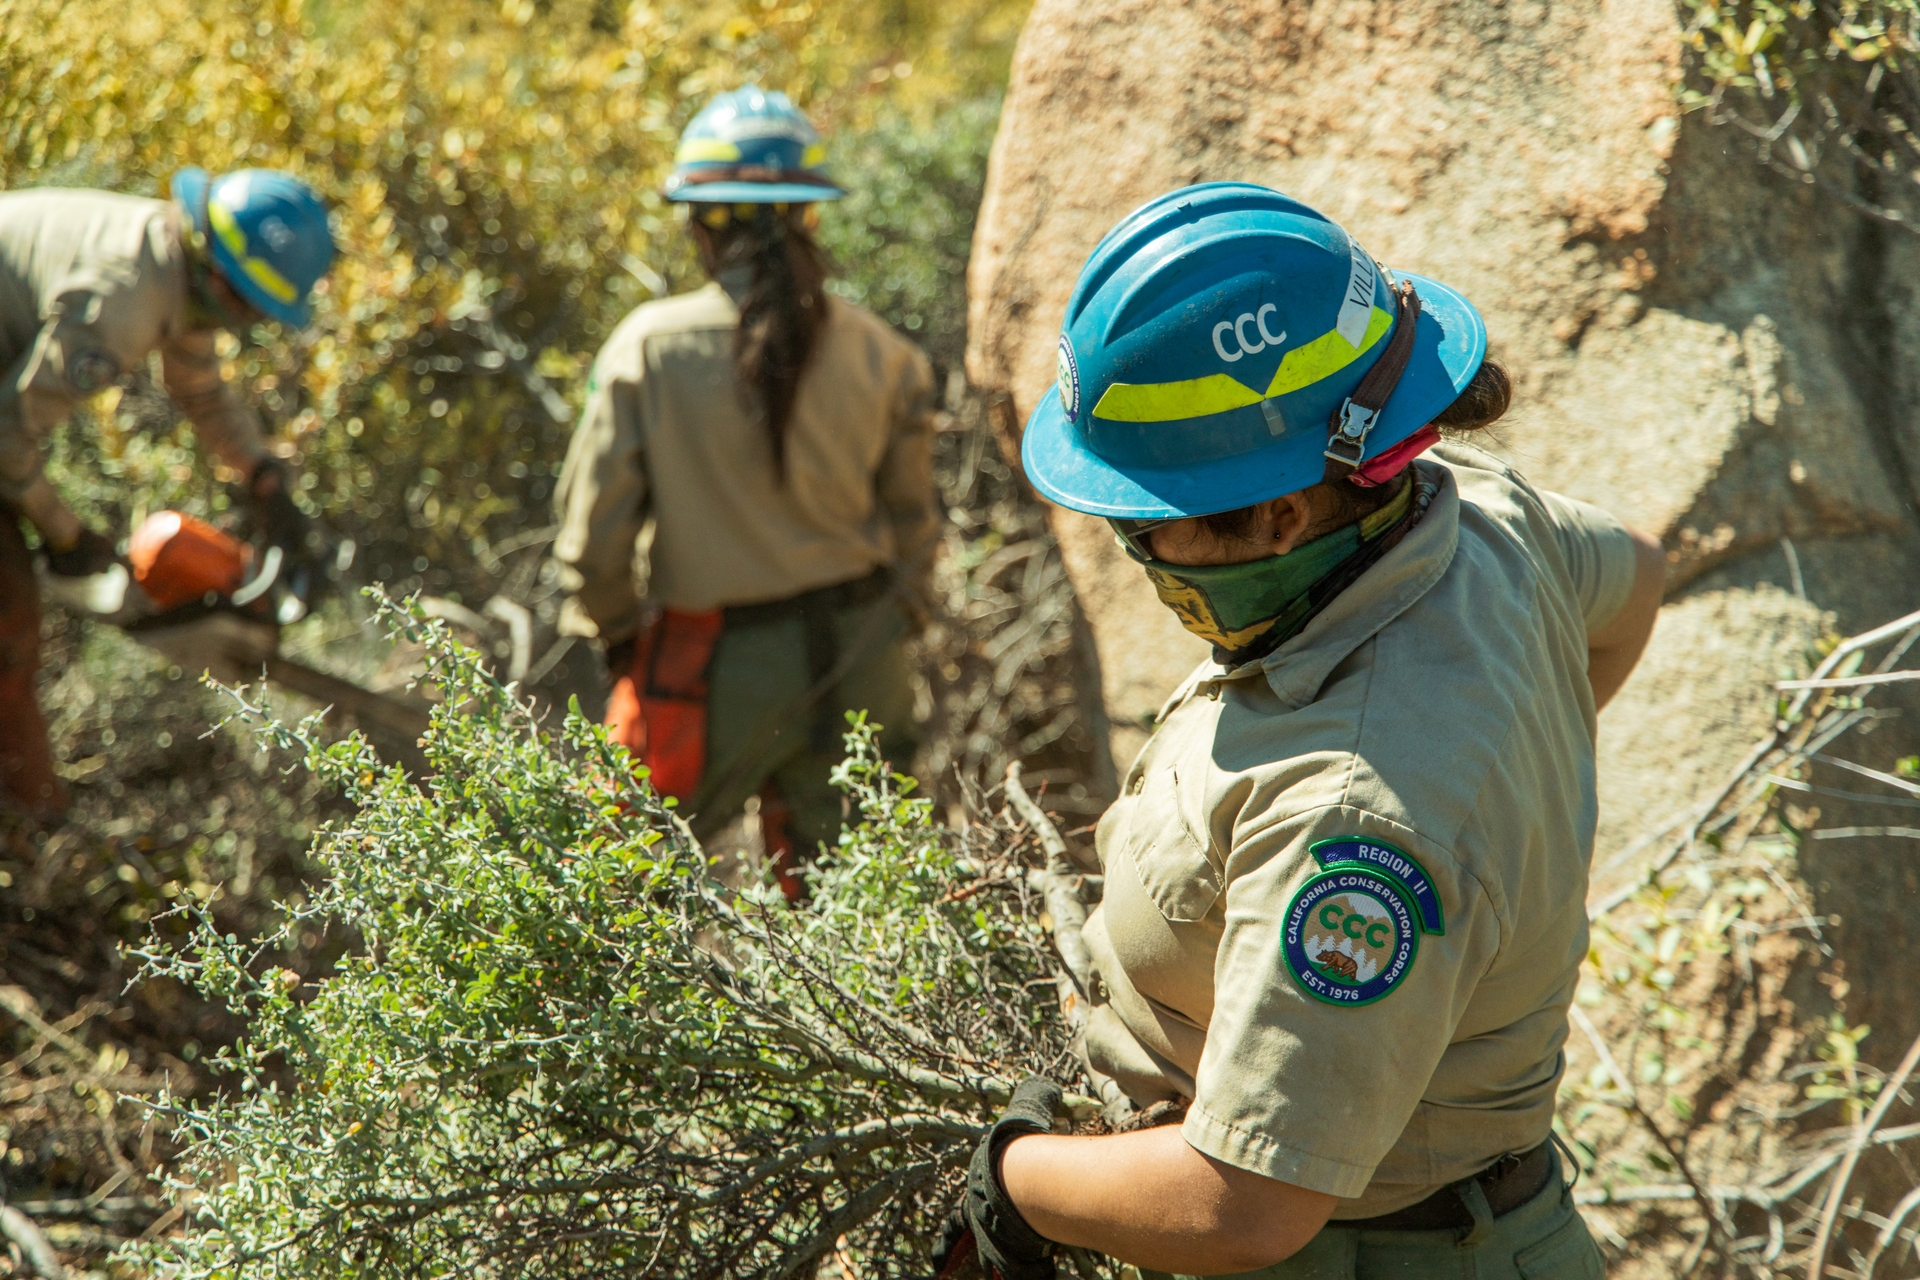 CCC Corpsmembers work to clear hazardous brush and trees near Big Bear.